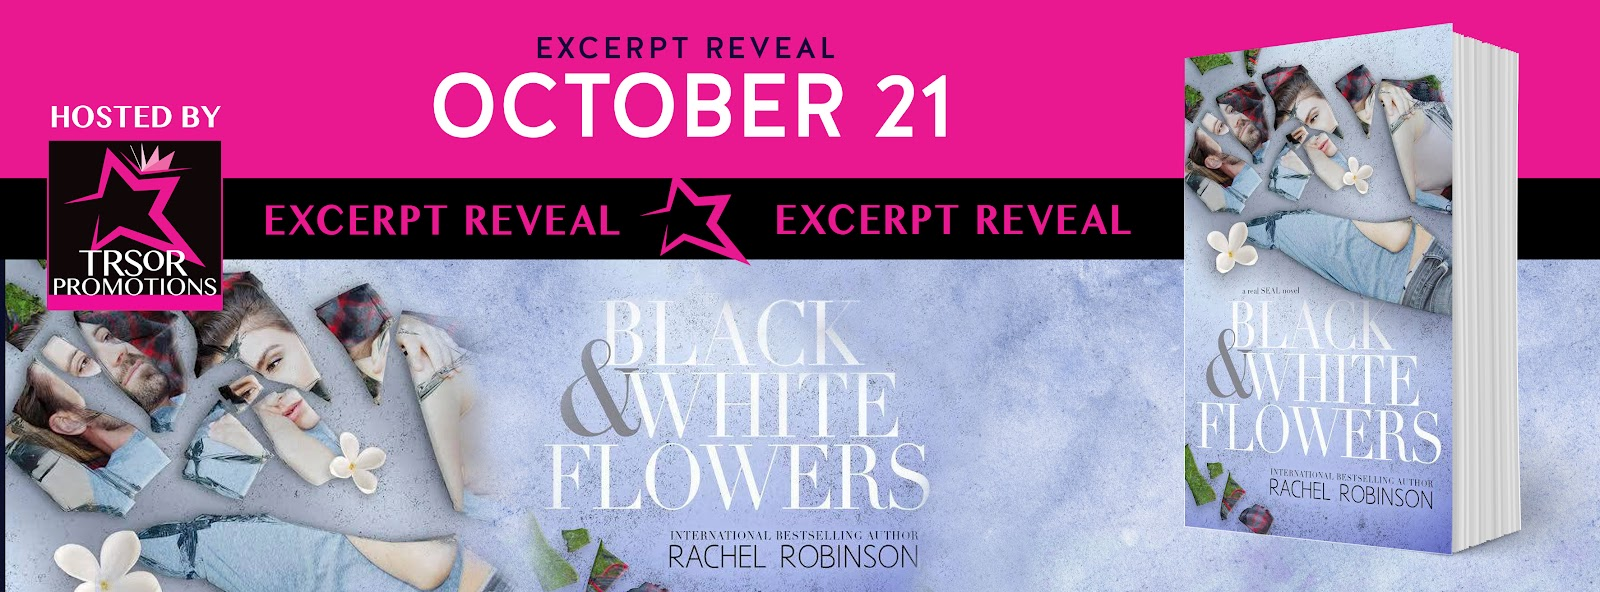 BLACK_WHITE_FLOWERS_EXCERPT.jpg